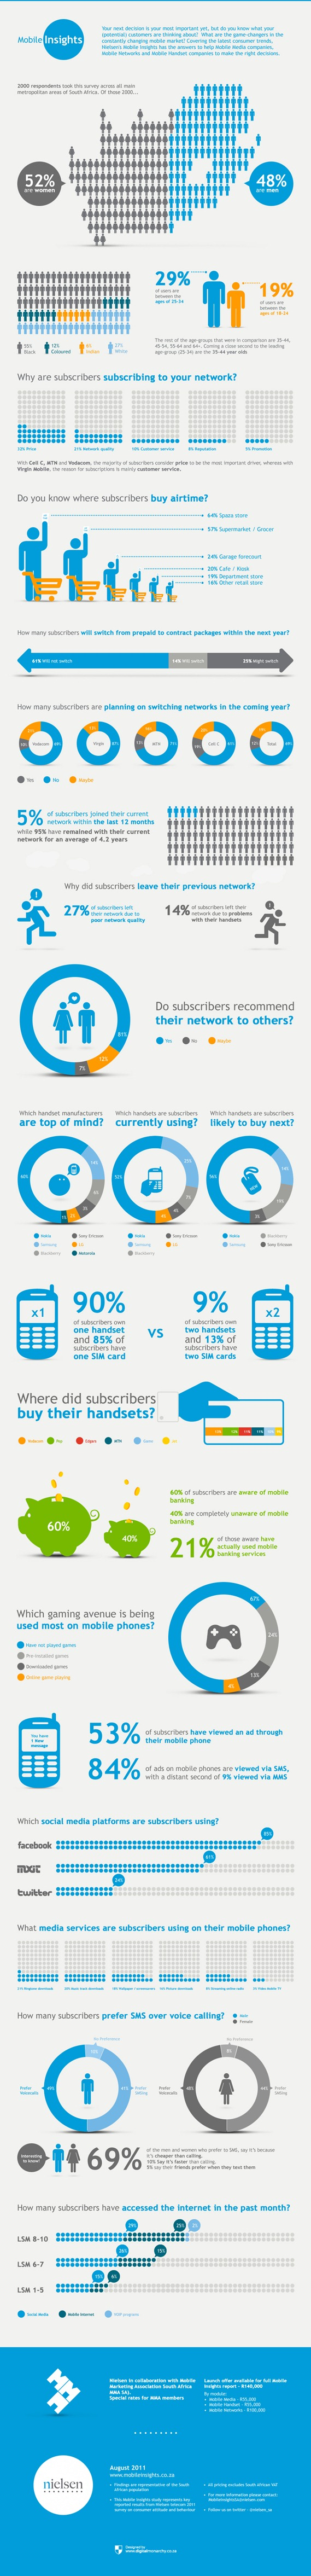 nielsen-mobile-insights-infographic